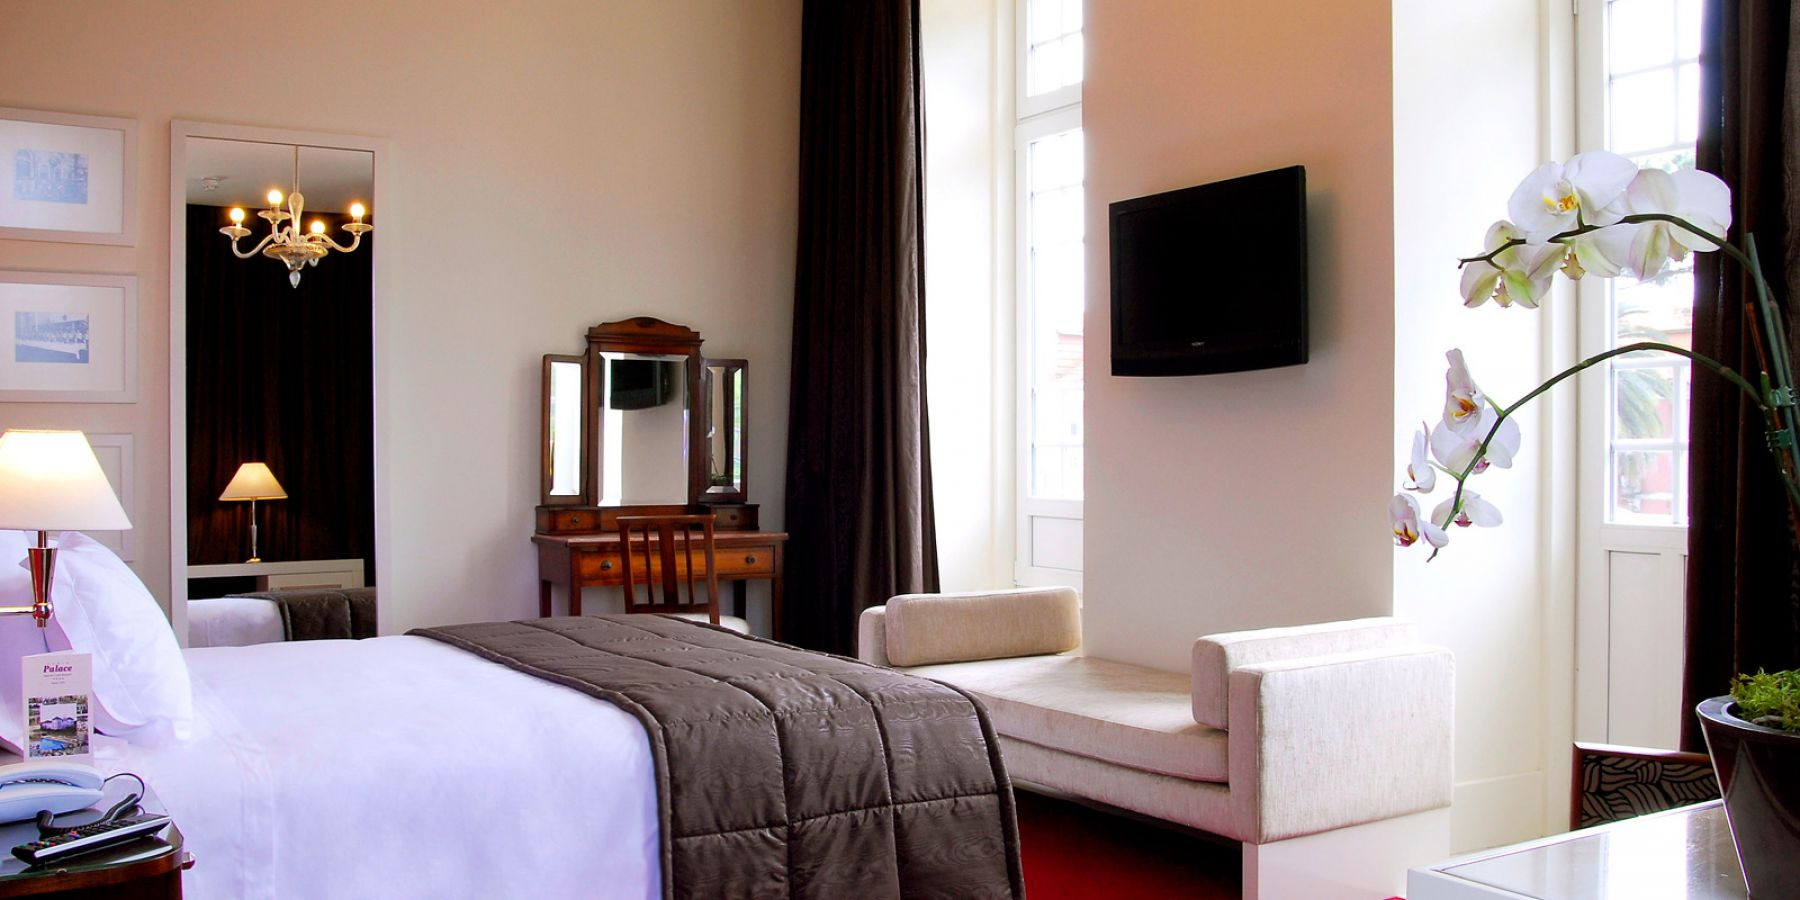 Rooms - Curia Palace Hotel ****